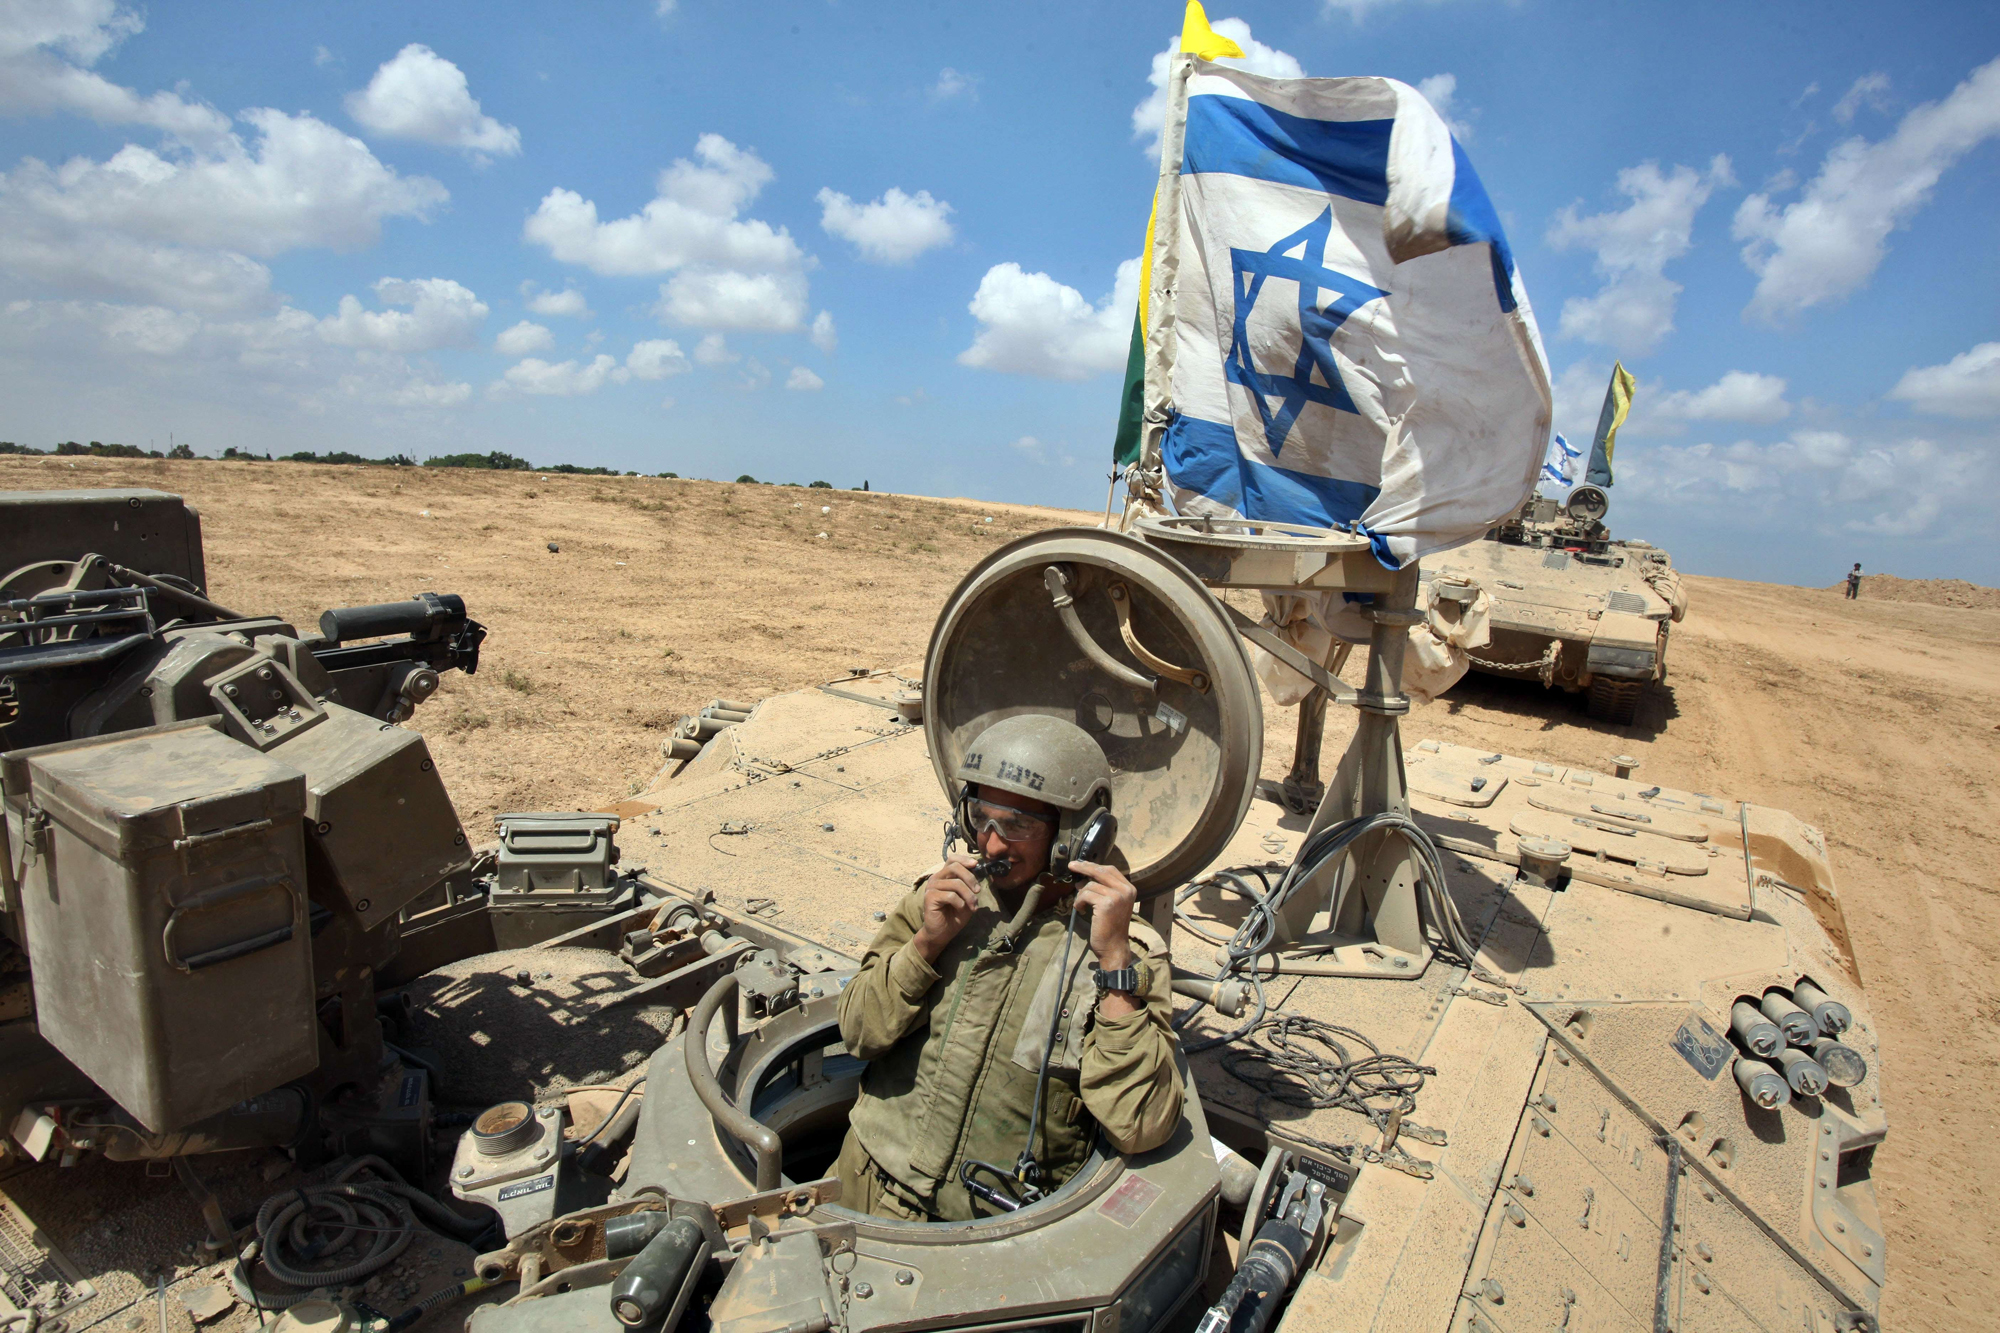 An Israeli soldier sits in an armored personnel carrier flying the Israeli flag as they return from the border between Israel and the Gaza Strip after pulling out of the Palestinian enclave on Aug. 4, 2014, as Israel has begun withdrawing some ground troops.